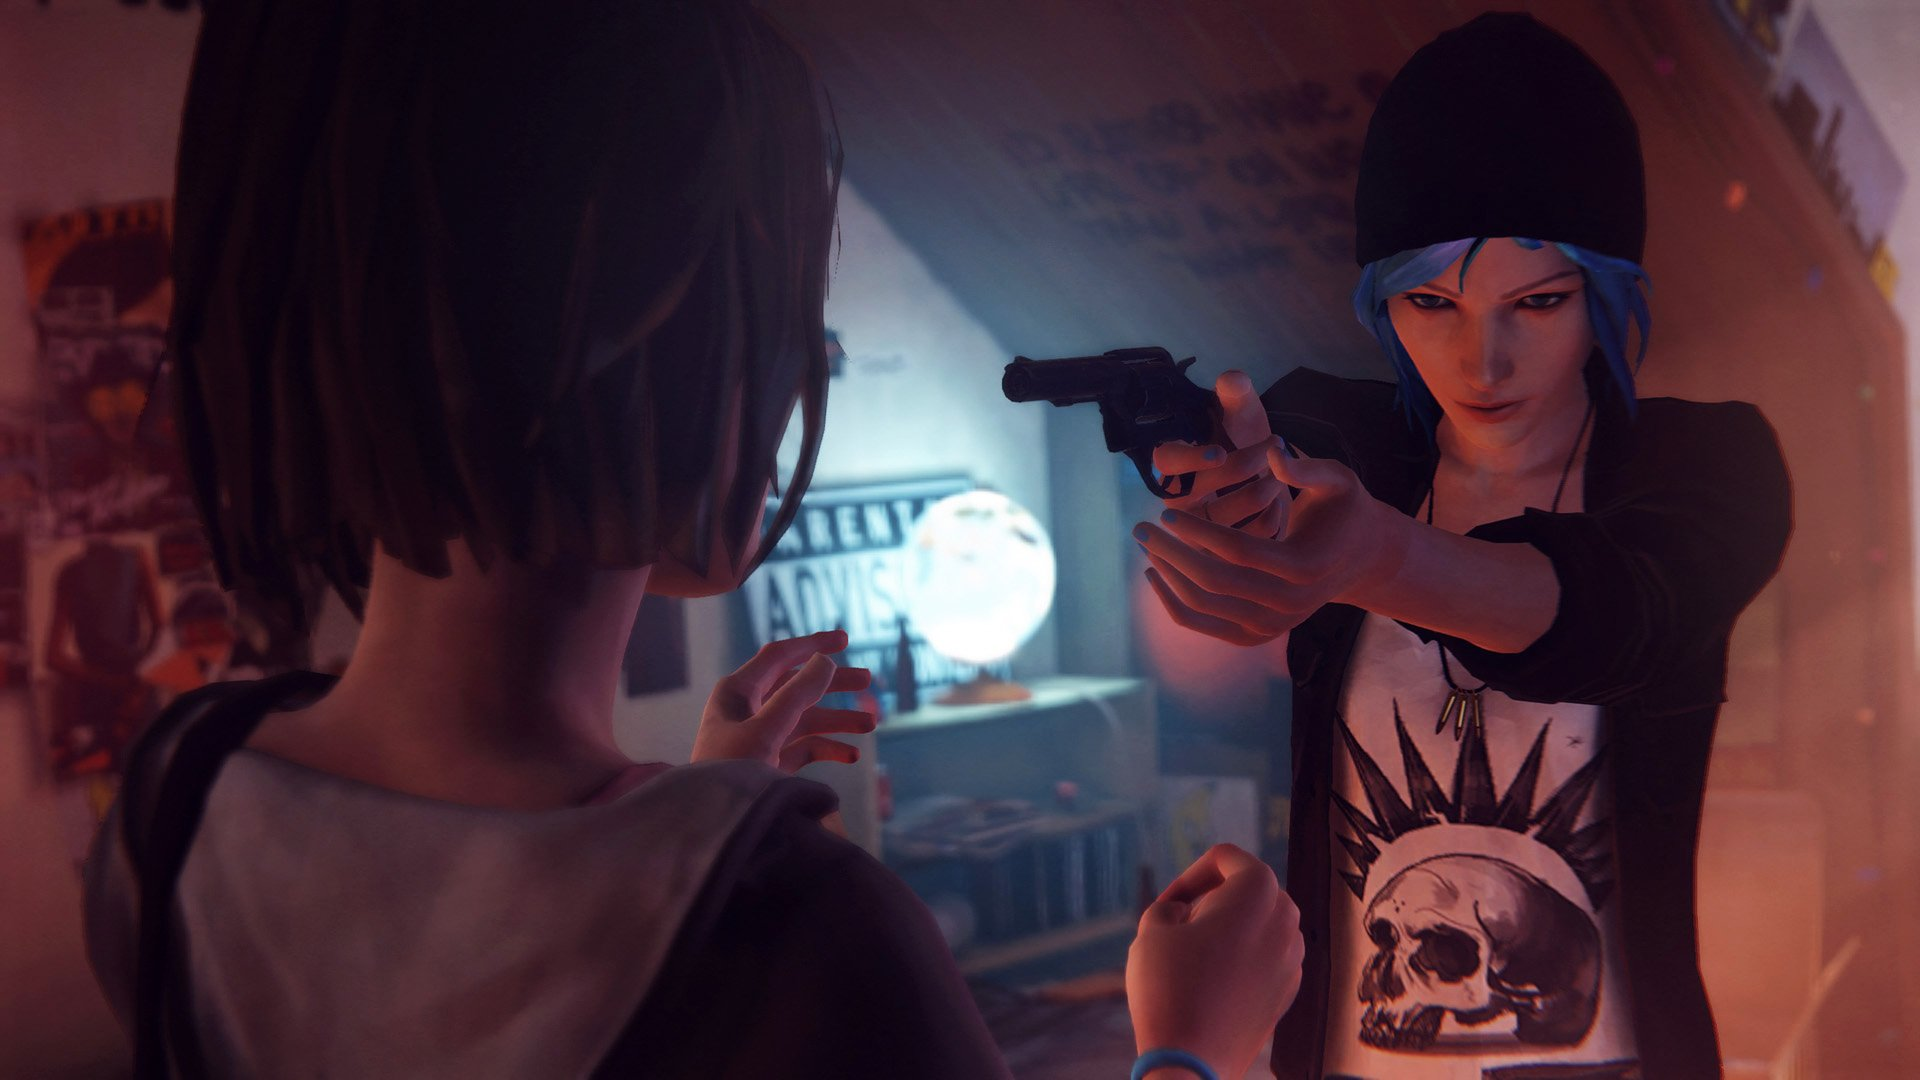 life is full strange happening Secrets never meant to be revealed life is strange: before the storm episode 3 review — a heart-wrenching, satisfying conclusion the third and final episode in deck nine's three-episode life is strange prequel is a gripping, emotional story that satisfying concludes chloe and rachel's journey.